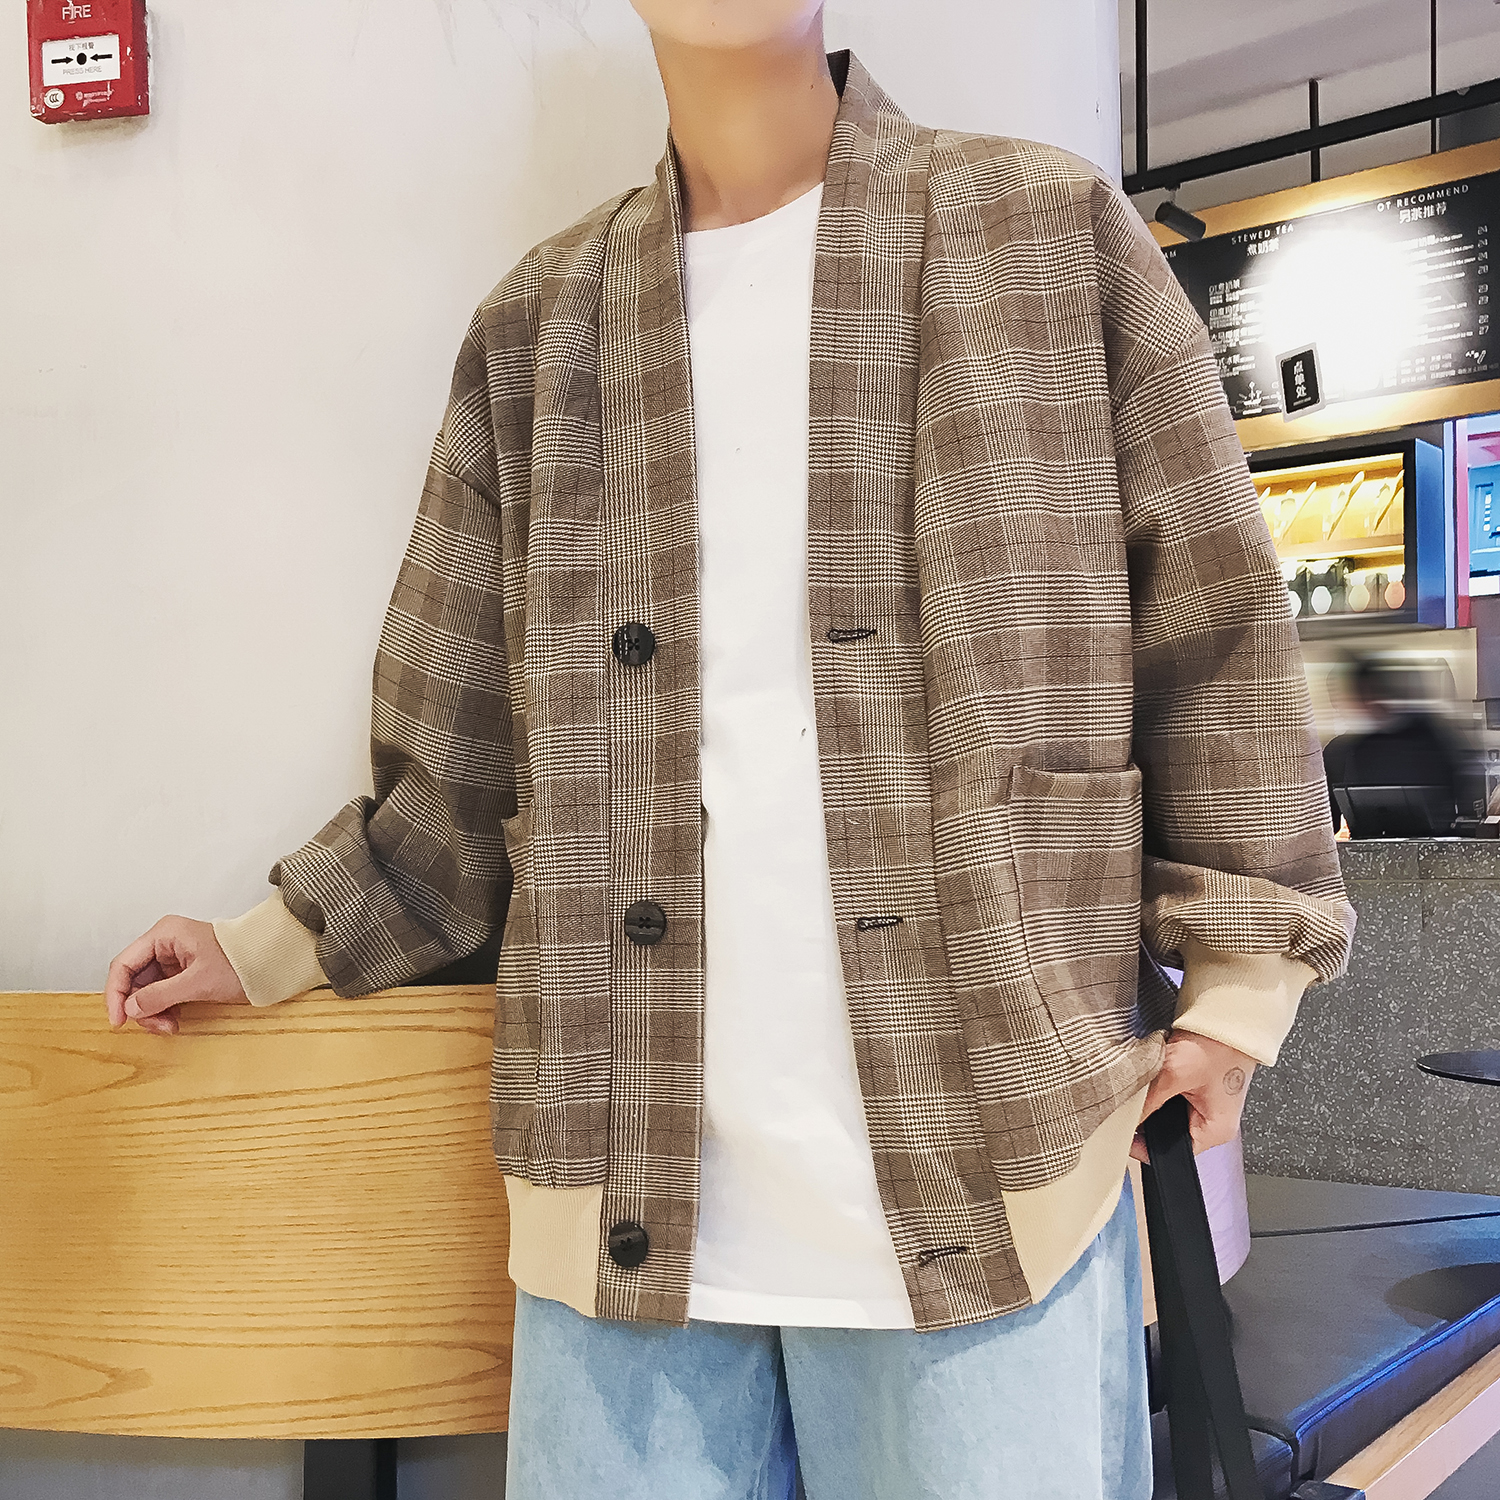 2019 Men's Lattice Pattern Quick drying outerwear clothes Fashion Tide Kimono Loose Casual Grey/Khaki Color Jacket Coats-in Jackets from Men's Clothing    1